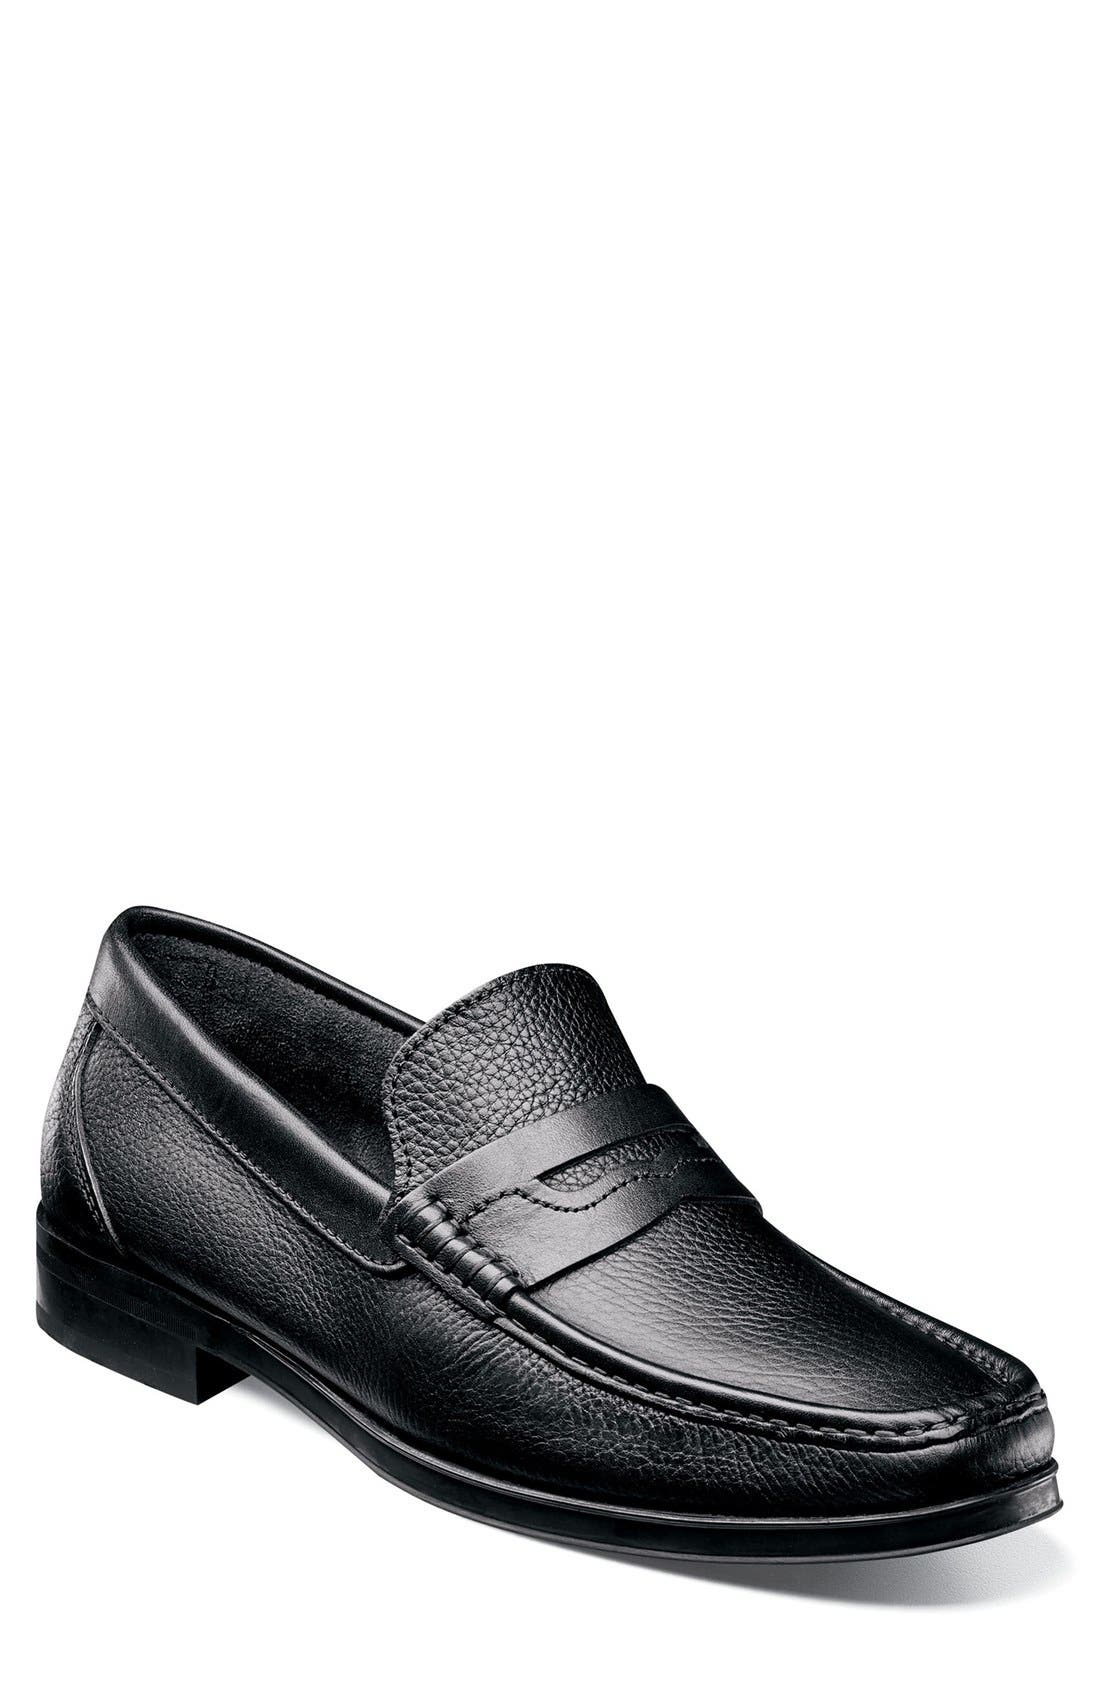 Westbrook Penny Loafer,                             Main thumbnail 1, color,